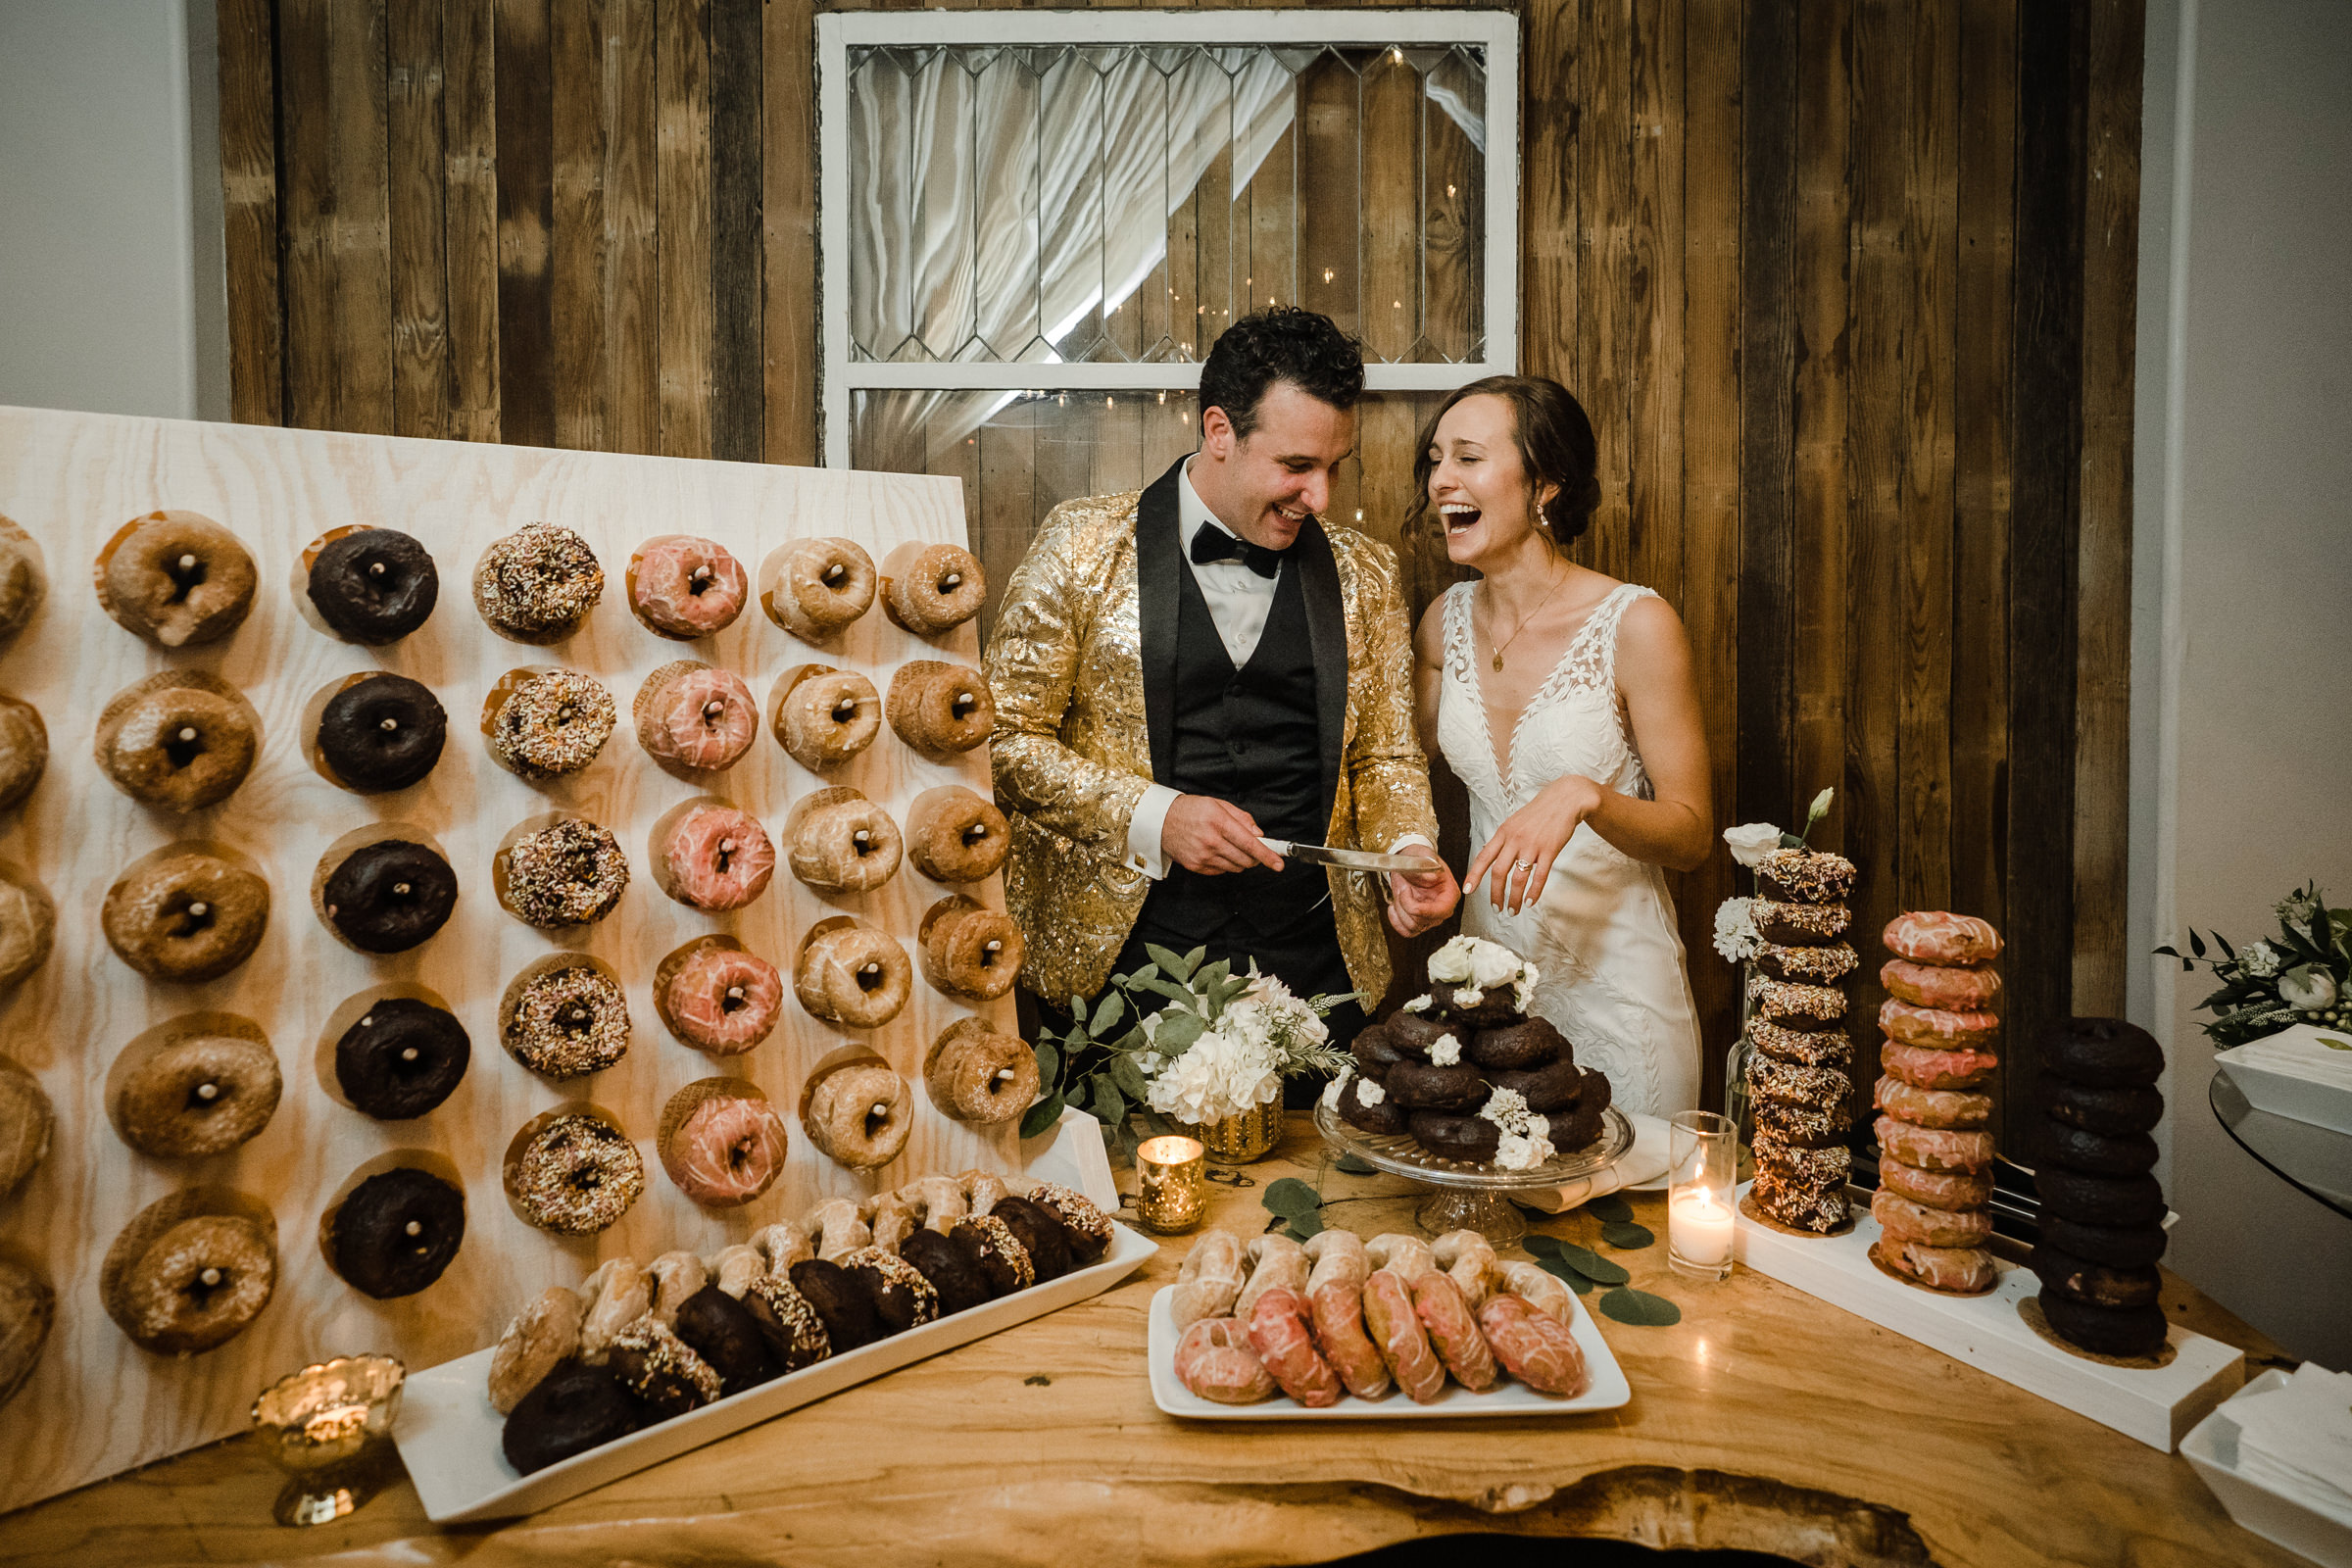 Bride and groom delighted at donut dessert table - photo by Sasha Reiko Photography